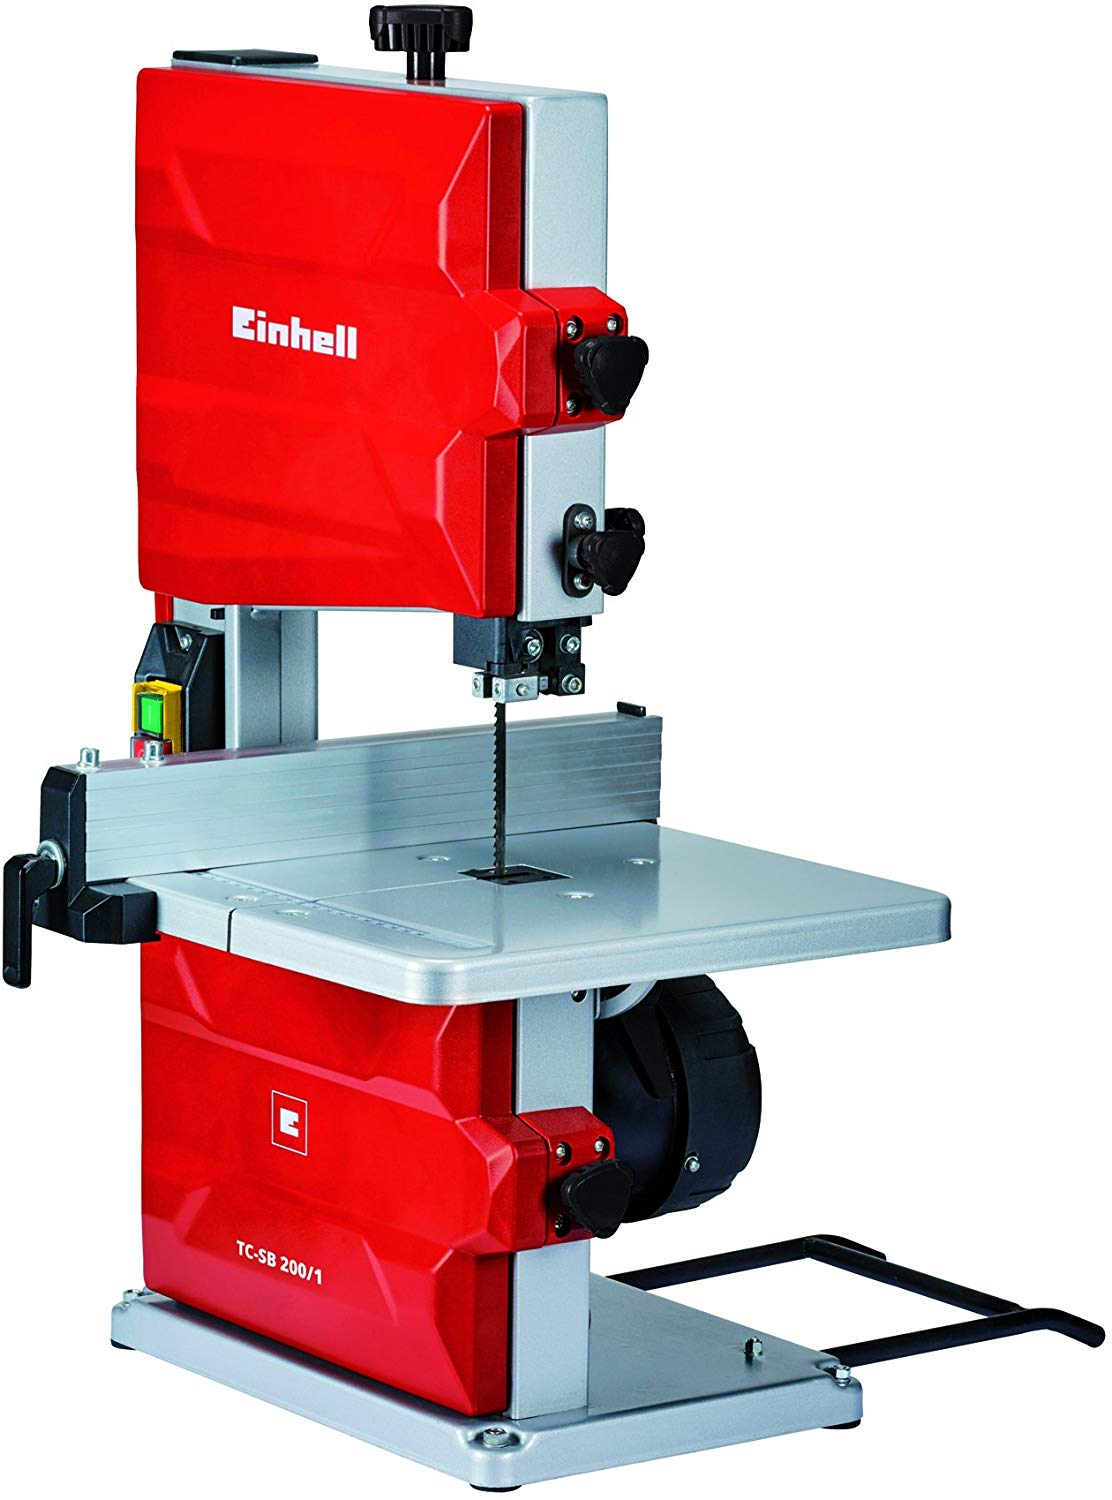 scie sur table EINHELL TC-SB 200